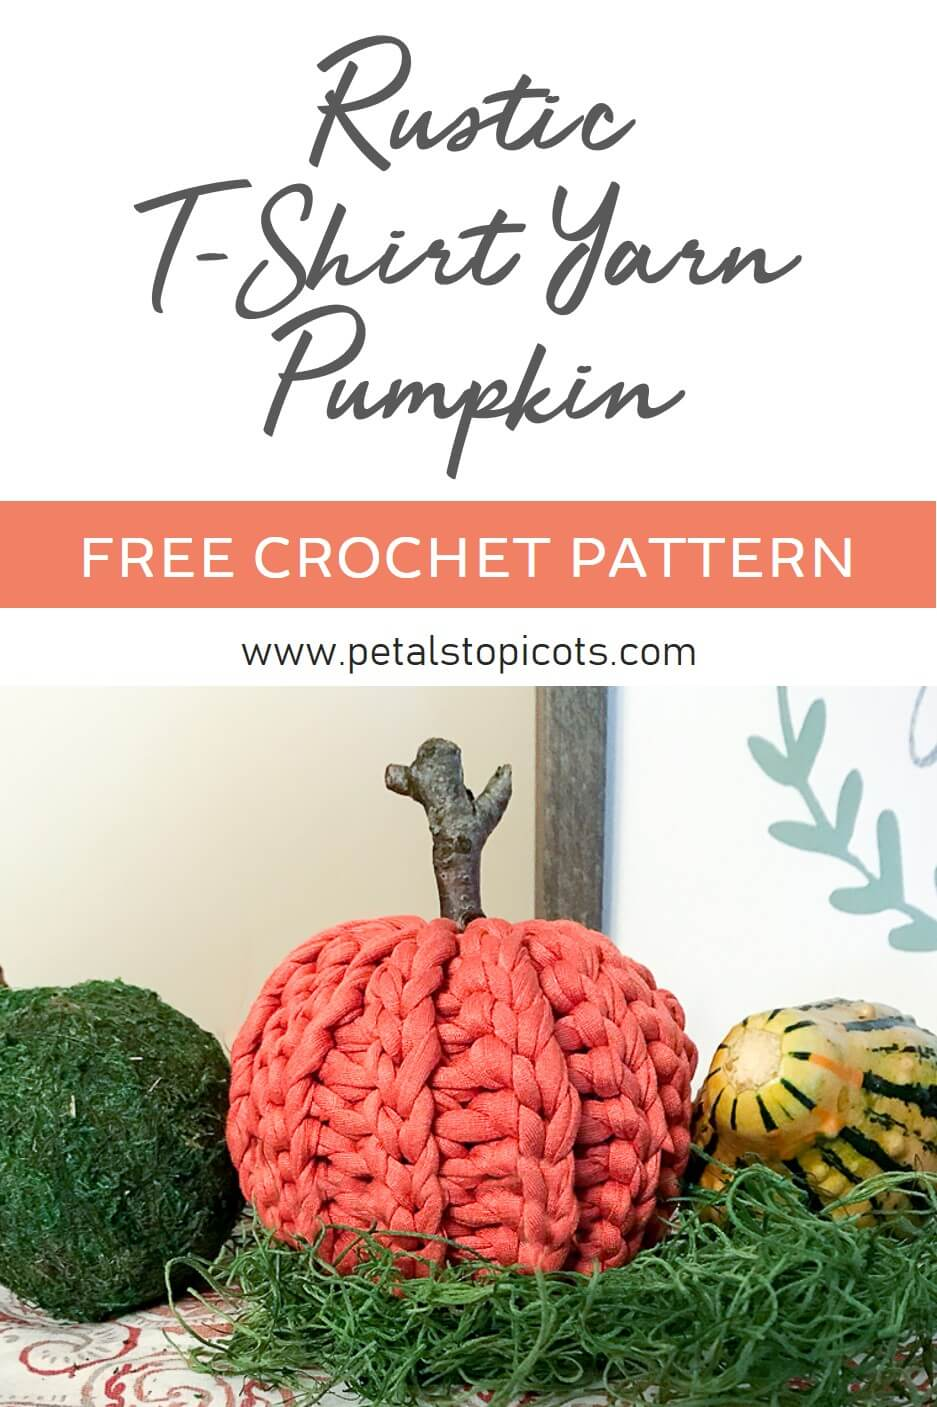 This rustic crochet pumpkin is made with T-shirt yarn and is super quick to work up! The pattern is great for all crochet experience levels as well since it\'s worked flat, with no increasing or decreasing, and then seamed up and stuffed. The slip stitch pattern also adds a great knit-like accent. This little darling is sure to charm my decor all through the Autumn season! #petalstopicots